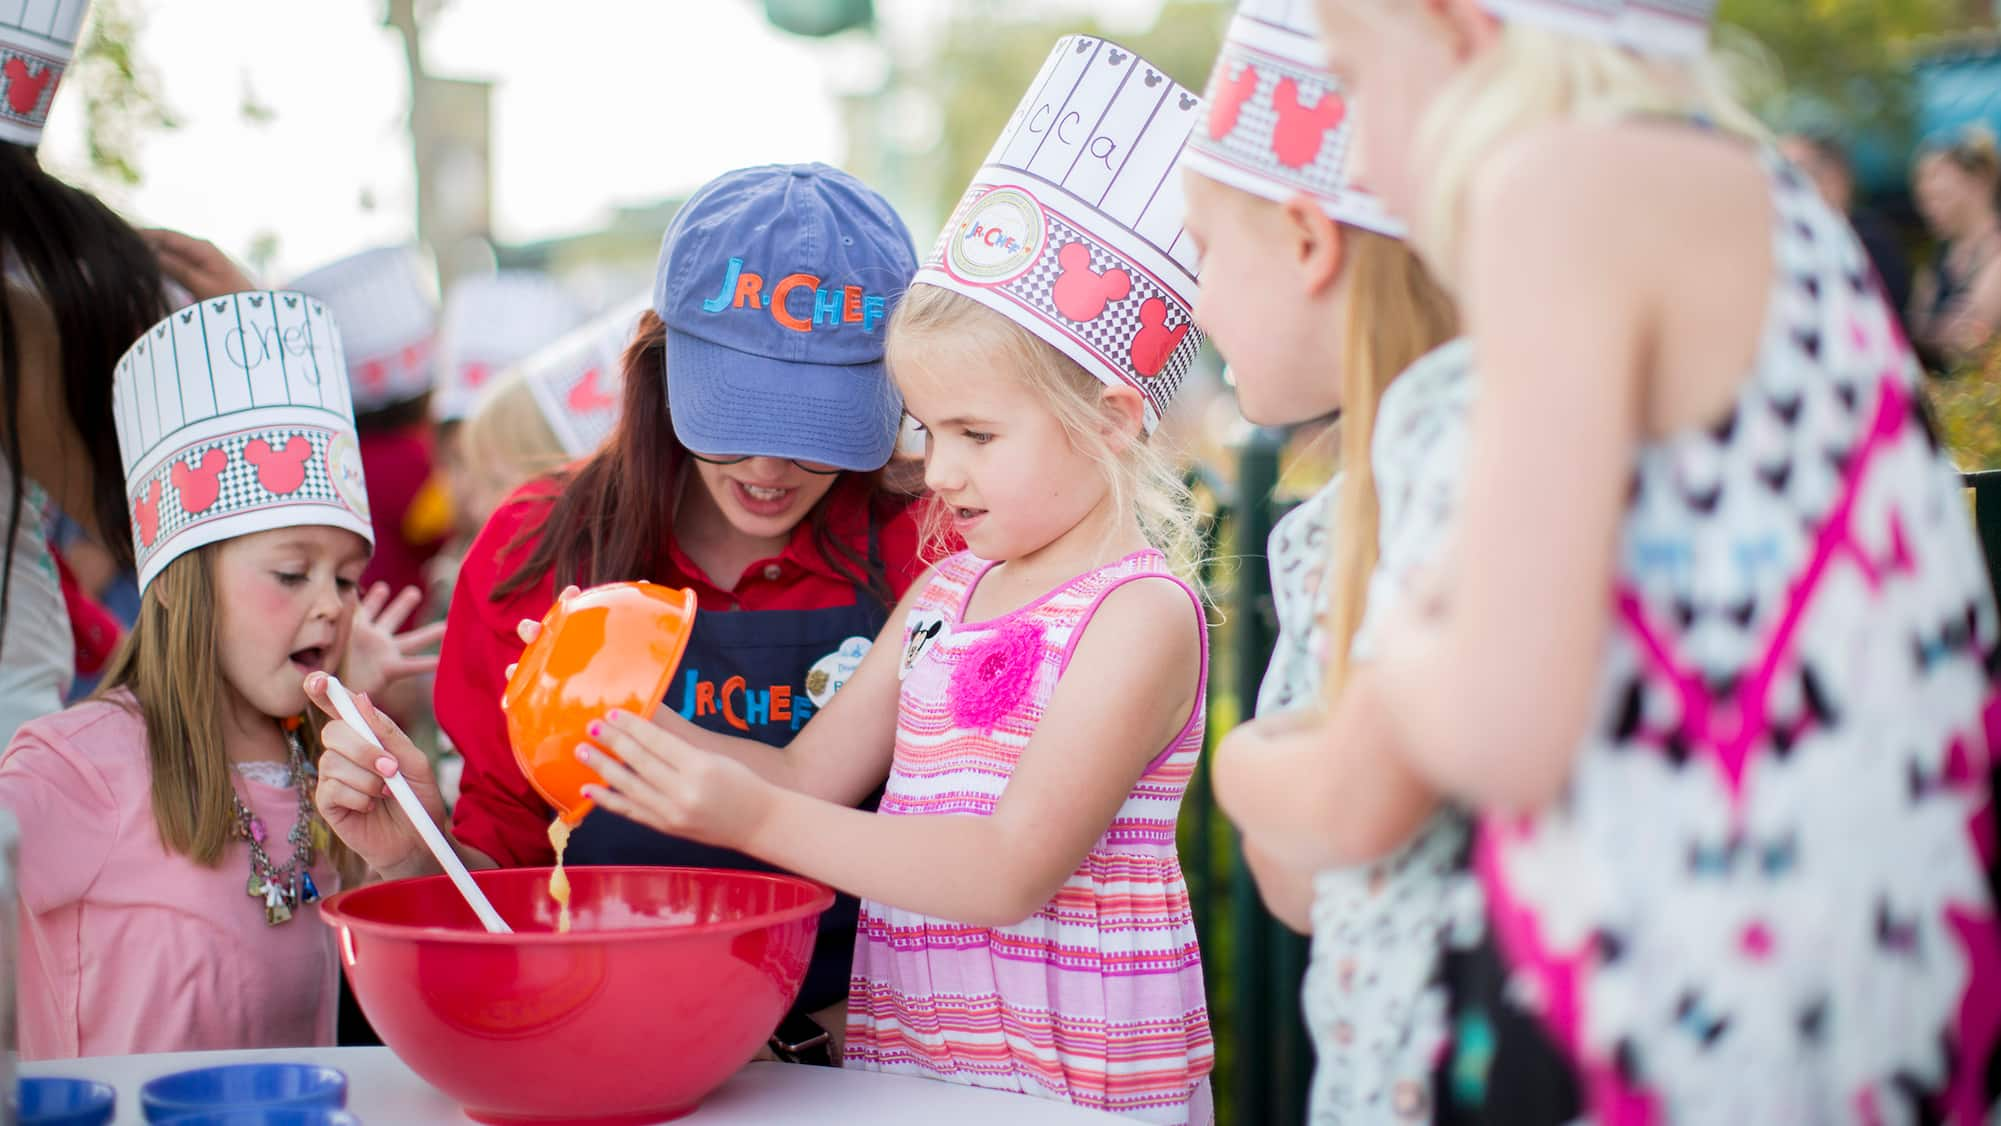 Girls wearing chef hats mix batter in a bowl with the help of a woman wearing a Junior Chef baseball cap